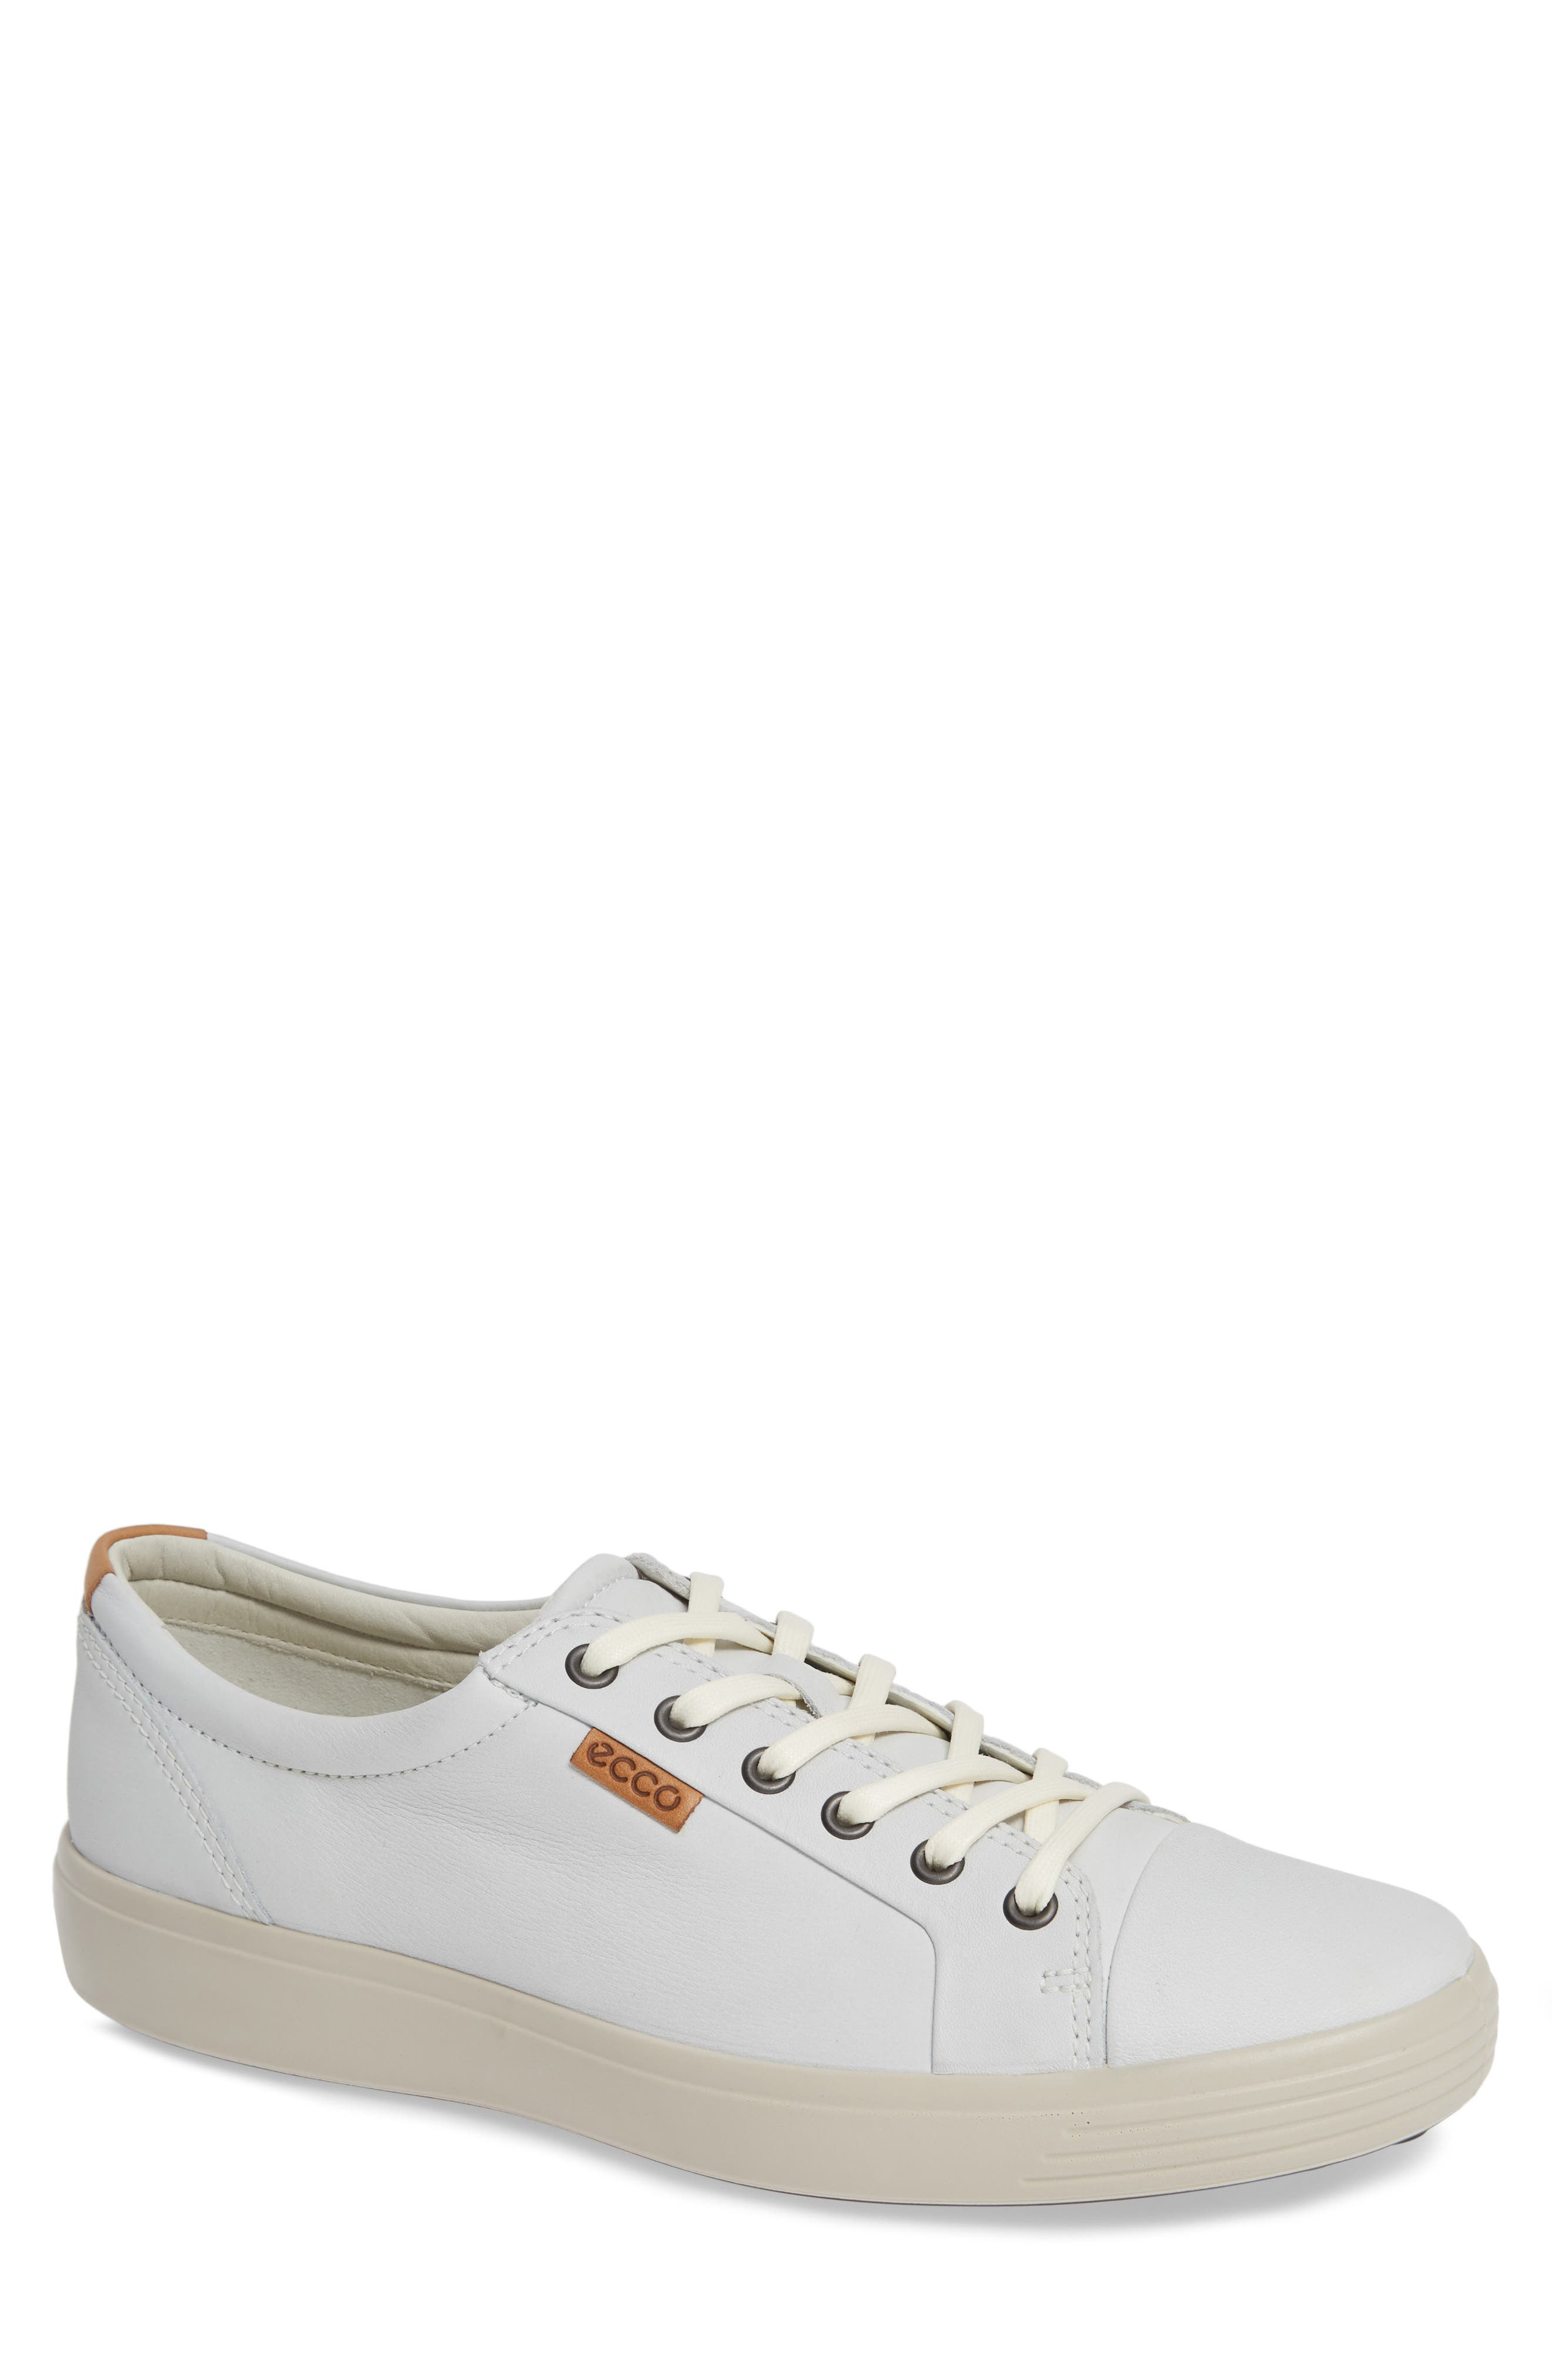 Soft VII Lace-Up Sneaker, Main, color, WHITE LEATHER